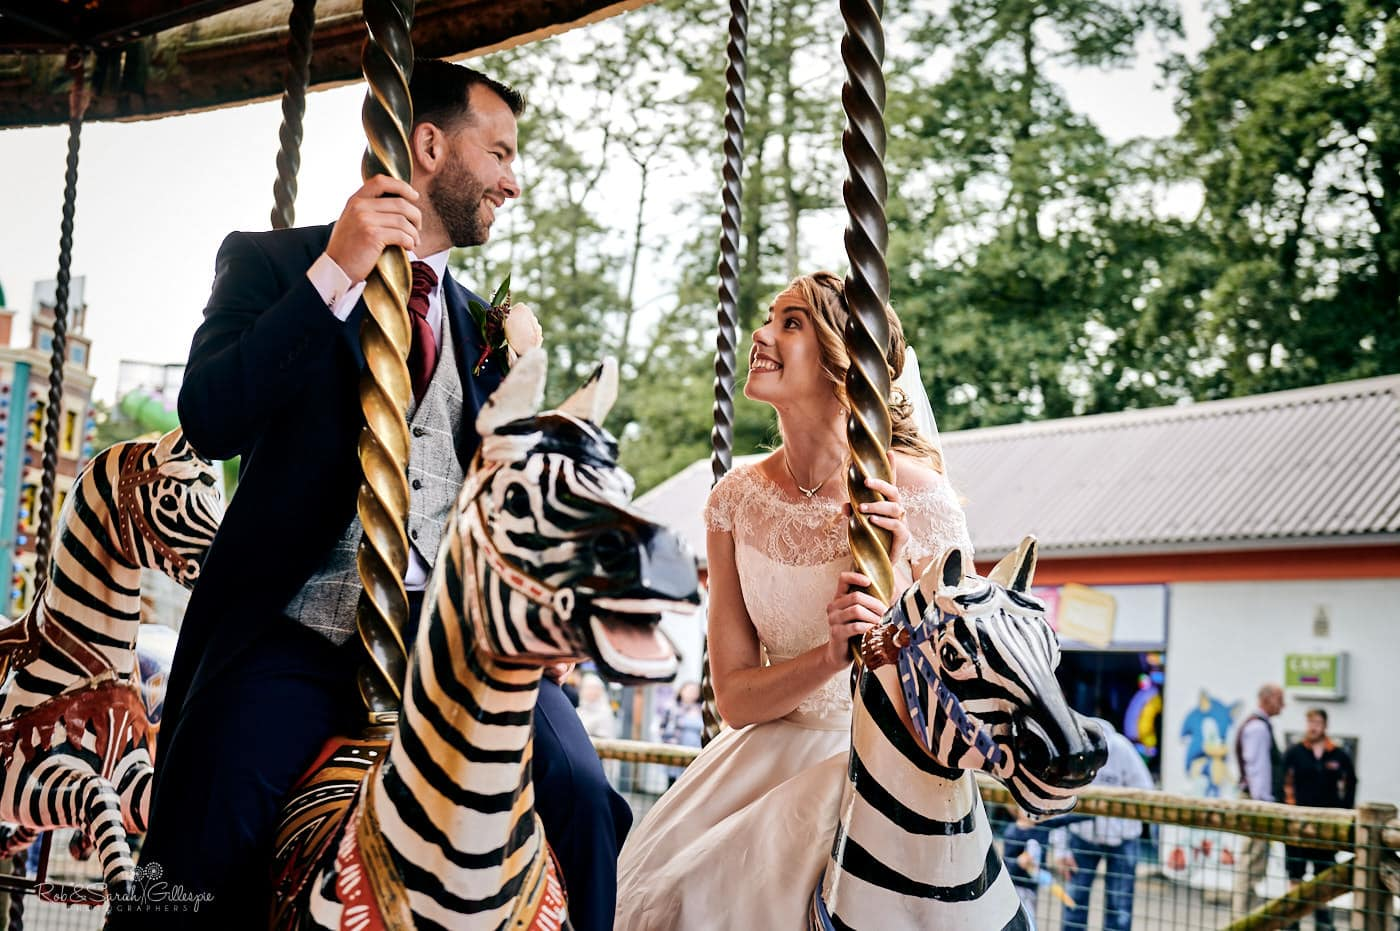 Bride and groom on carousel at Spring Grove House wedding